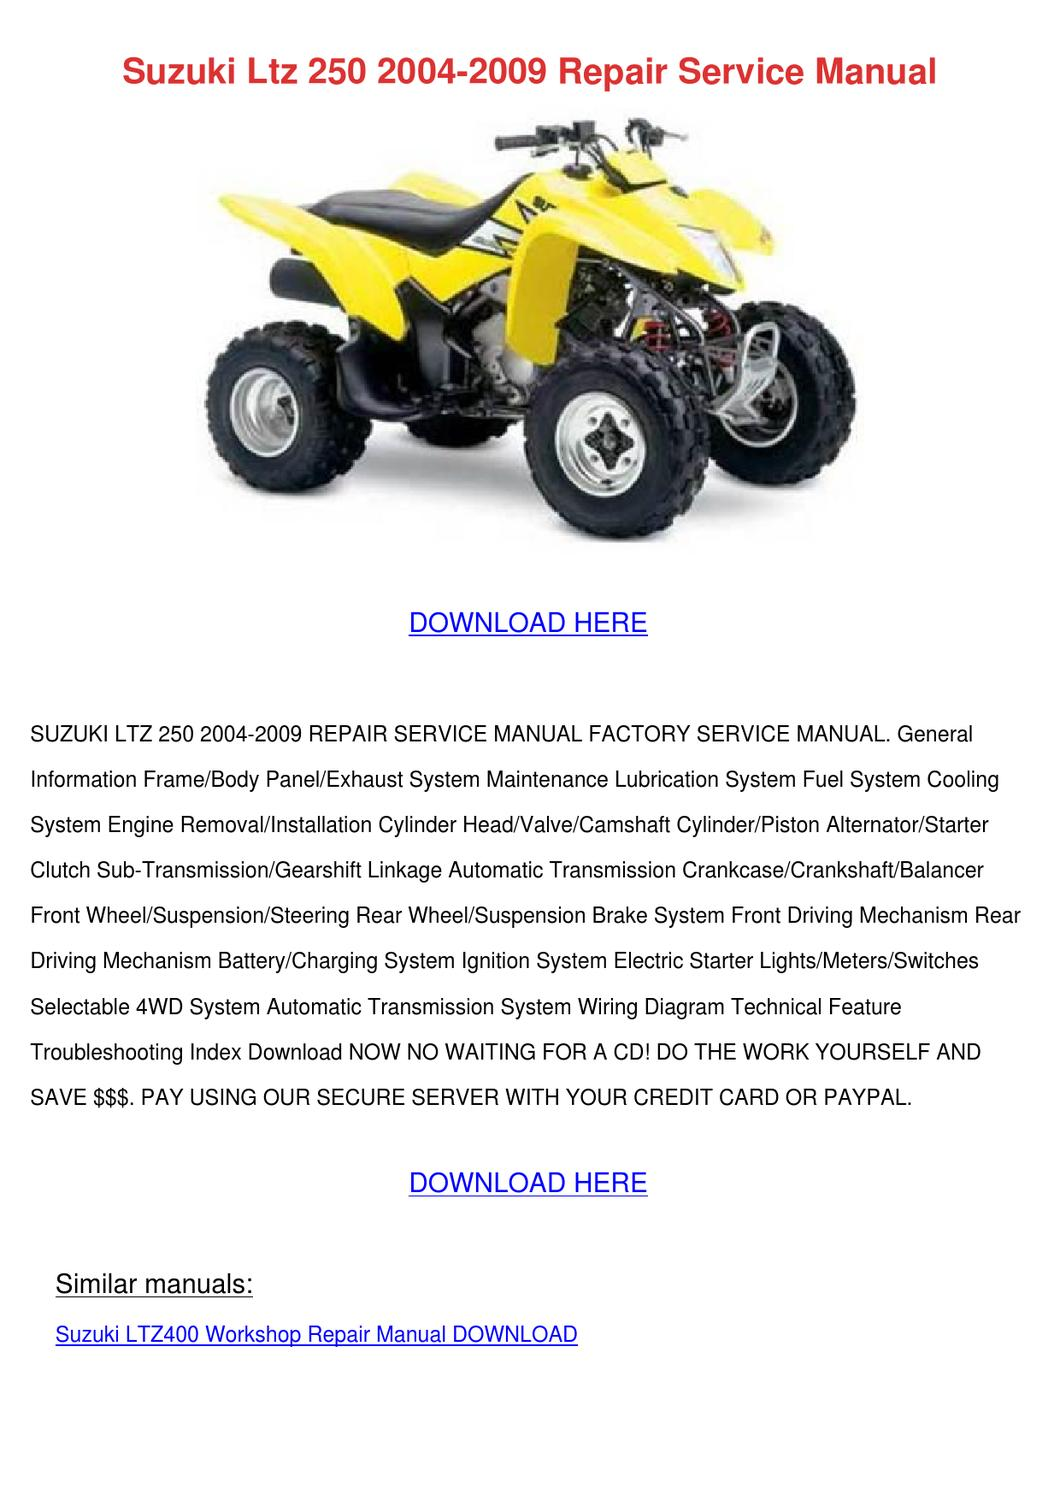 Suzuki Ltz 250 2004 2009 Repair Service Manua by WillardThao - issuu